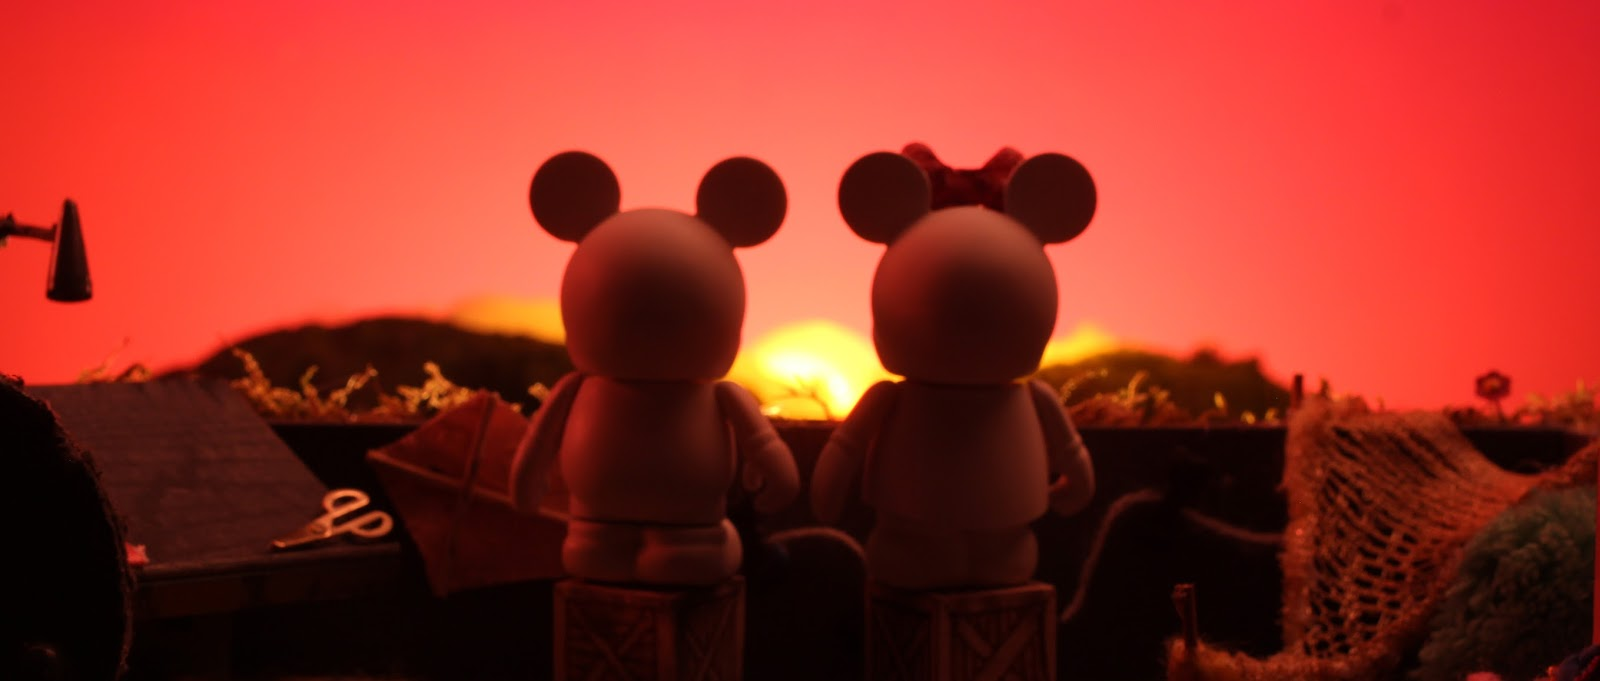 Disney S Quot Blank A Vinylmation Love Story Quot Review How I